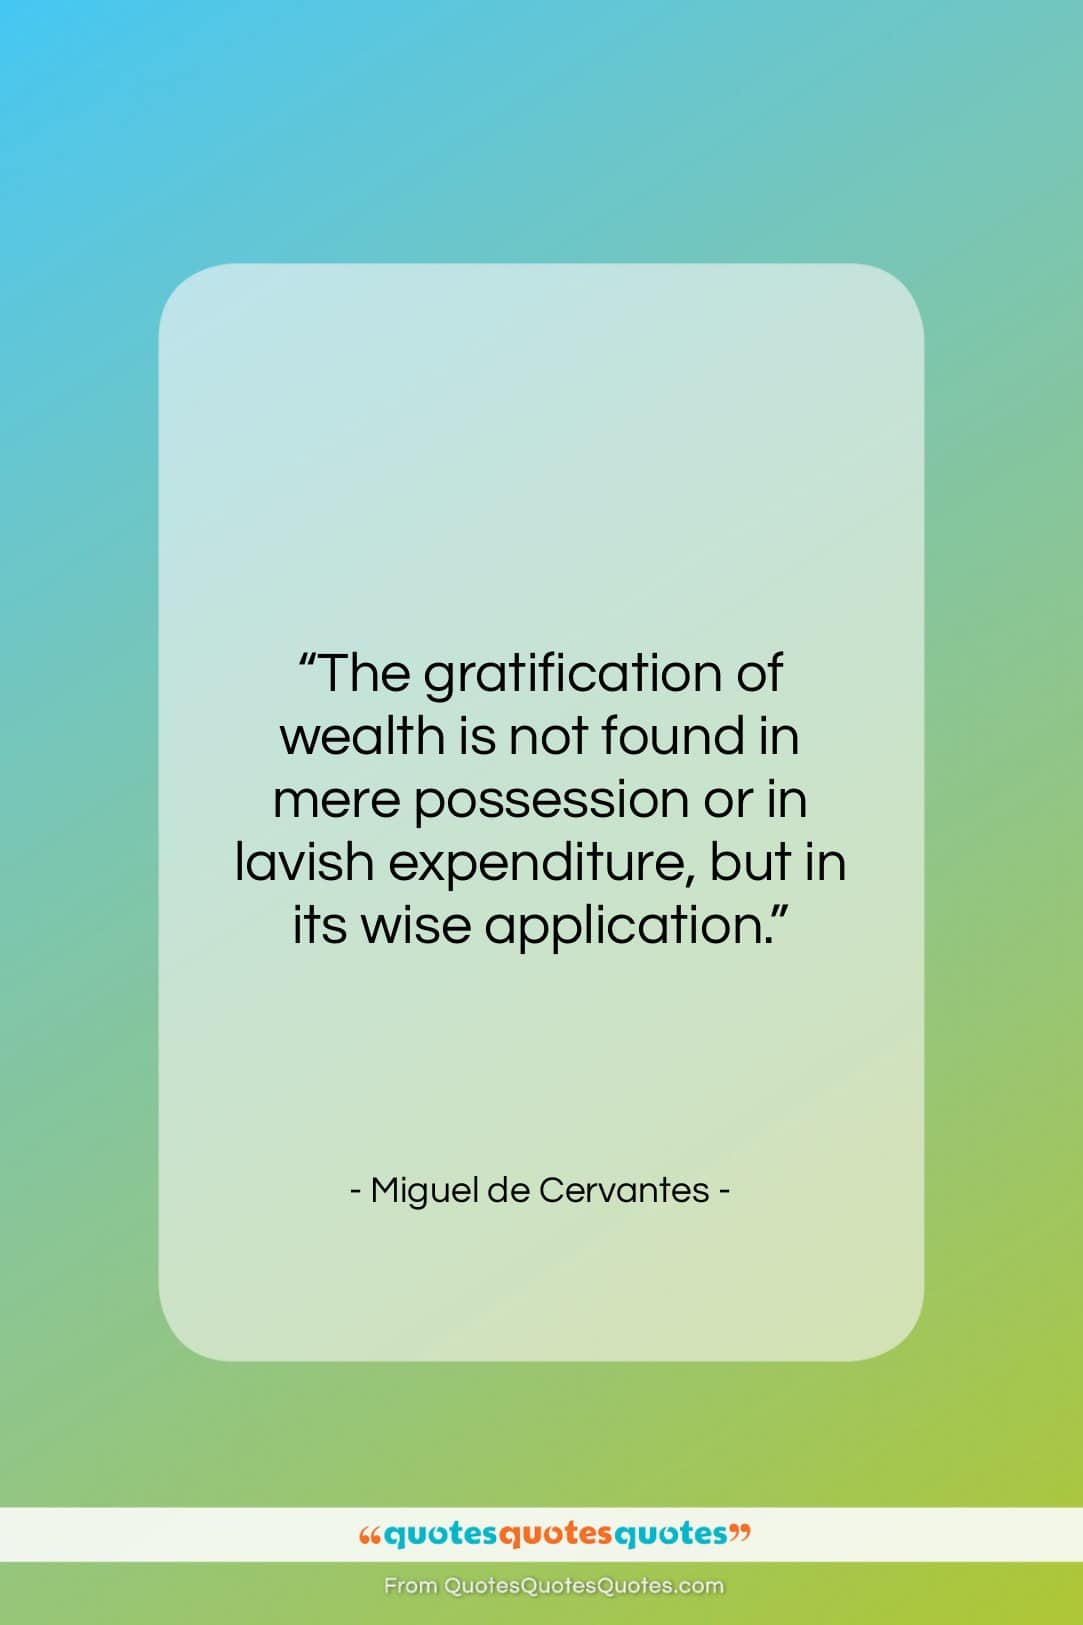 """Miguel de Cervantes quote: """"The gratification of wealth is not found…""""- at QuotesQuotesQuotes.com"""